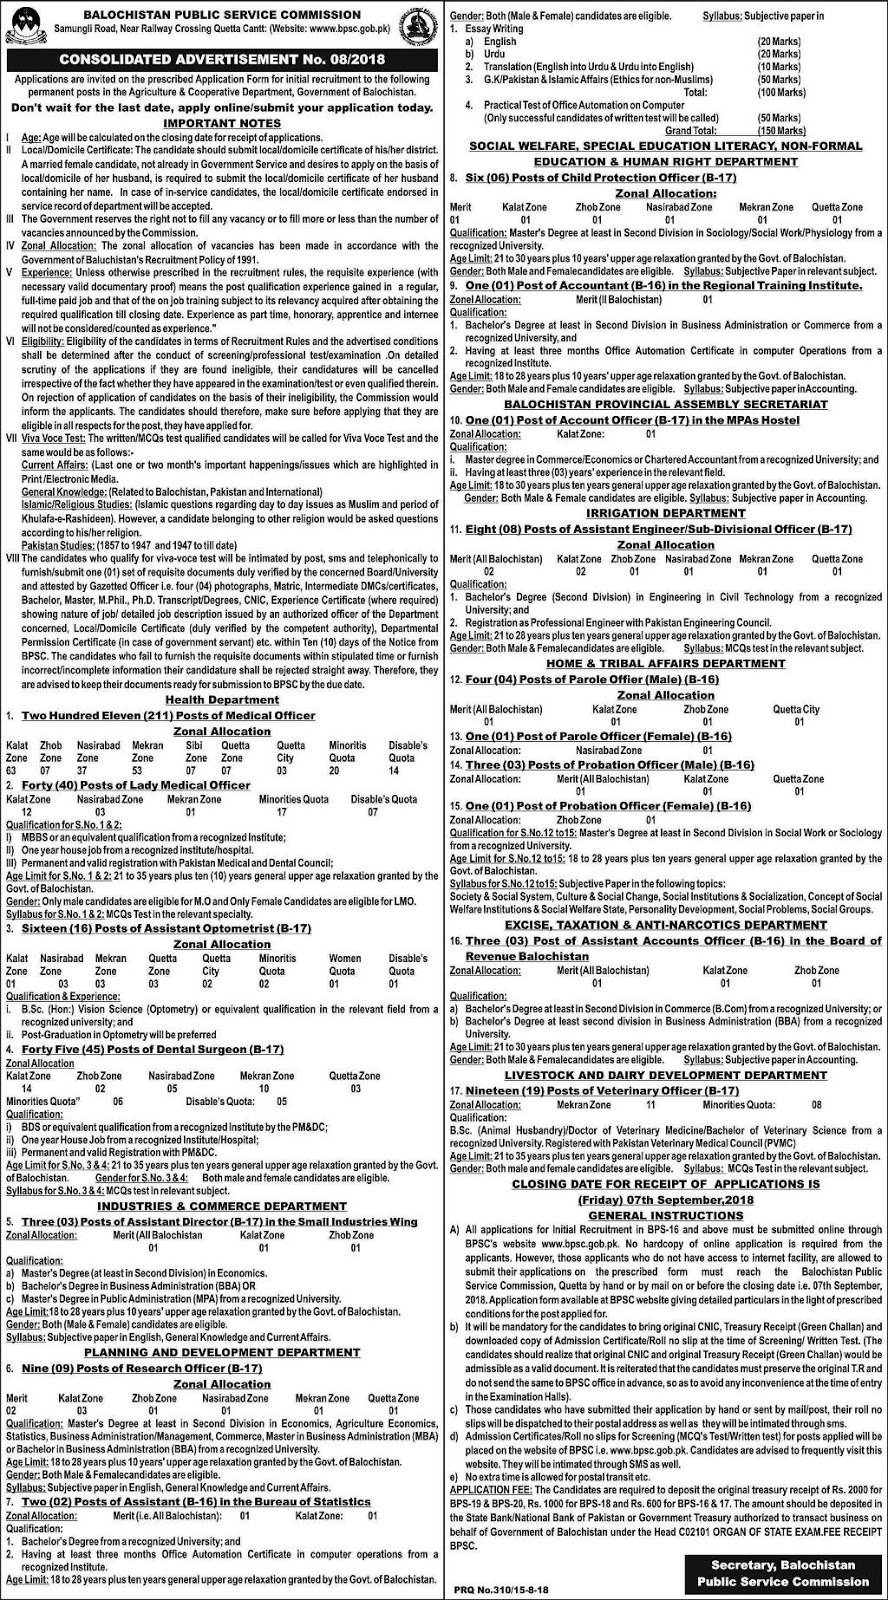 BPSC Jobs (373 Vacancies) Advertisement No. 8/2018